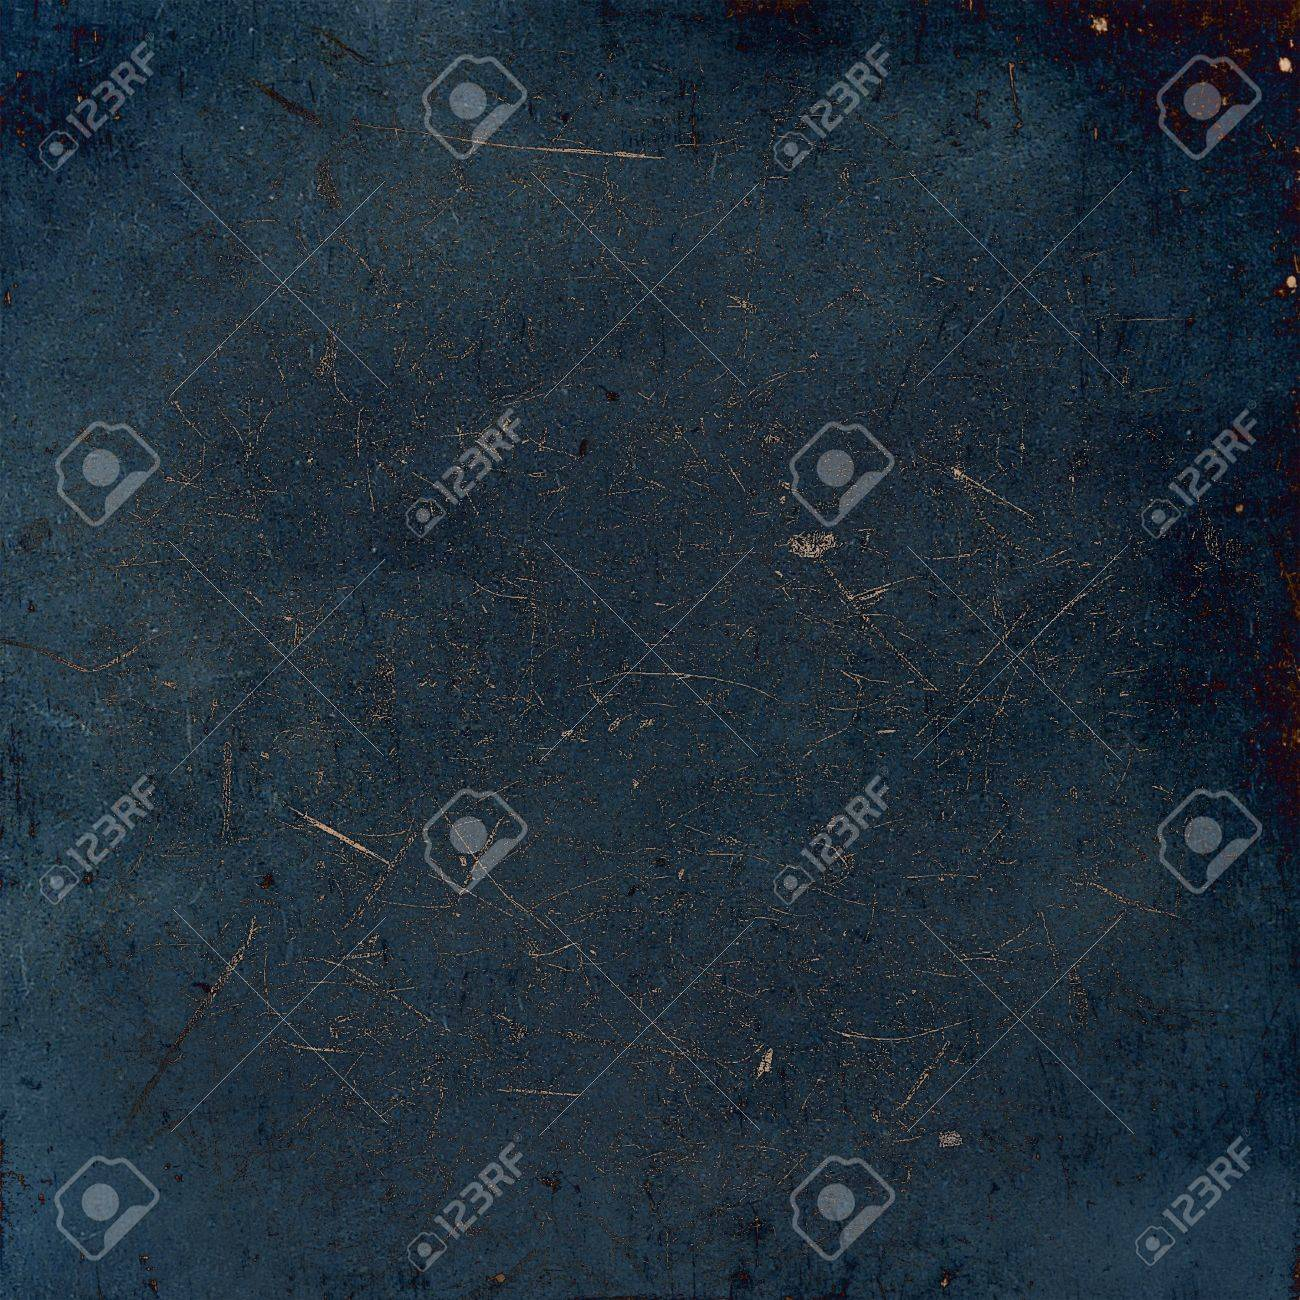 Gloomy vintage texture ideal for retro backgrounds. In dark colors Stock Photo - 17335786